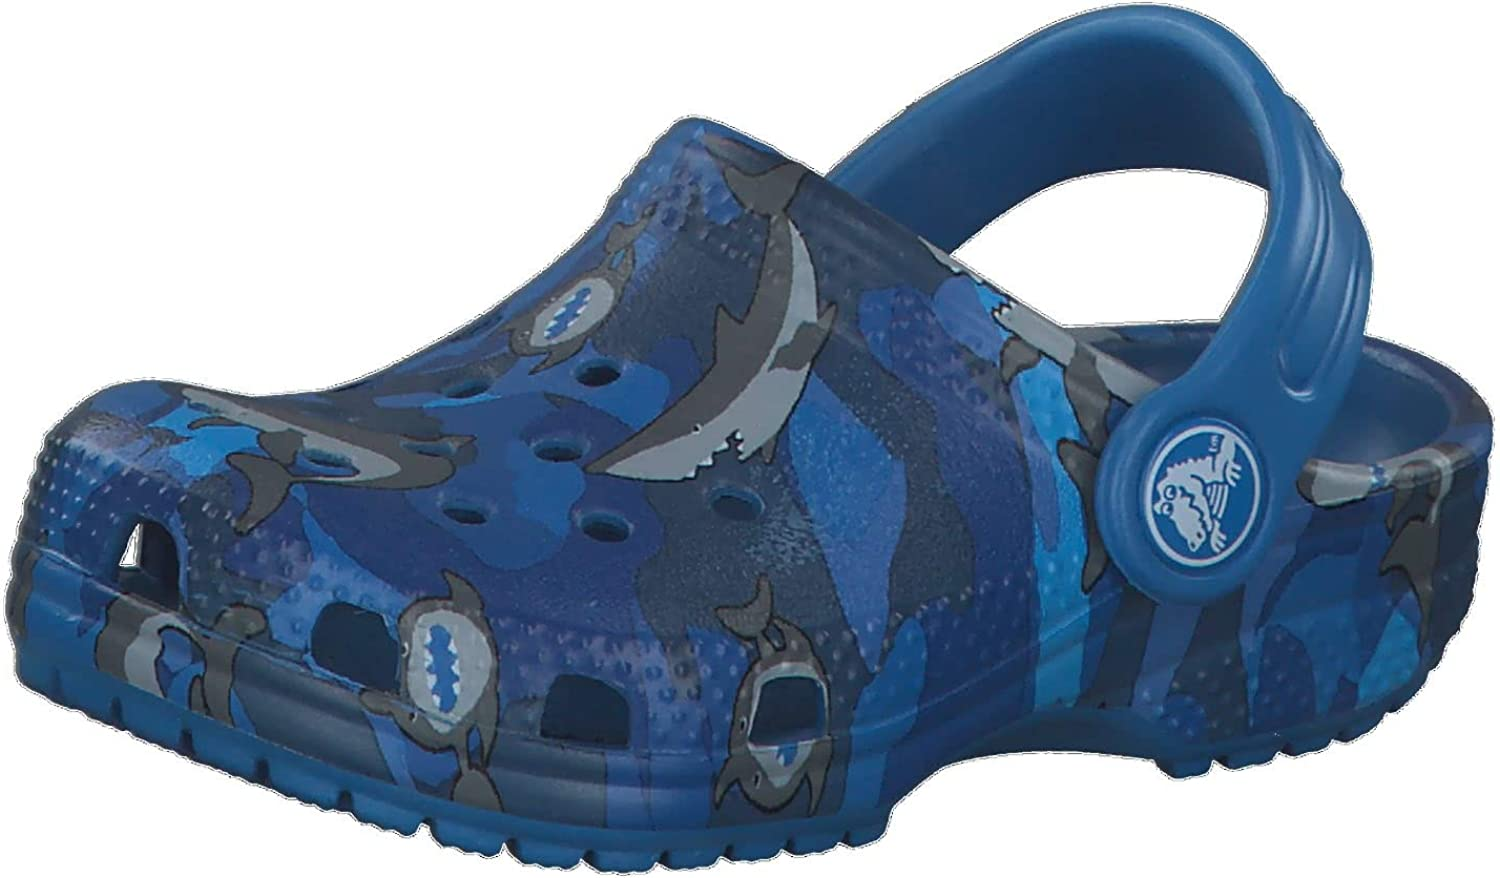 CROC Kids Classic Graphic Clog | Slip on Toddlers | Water Shoes